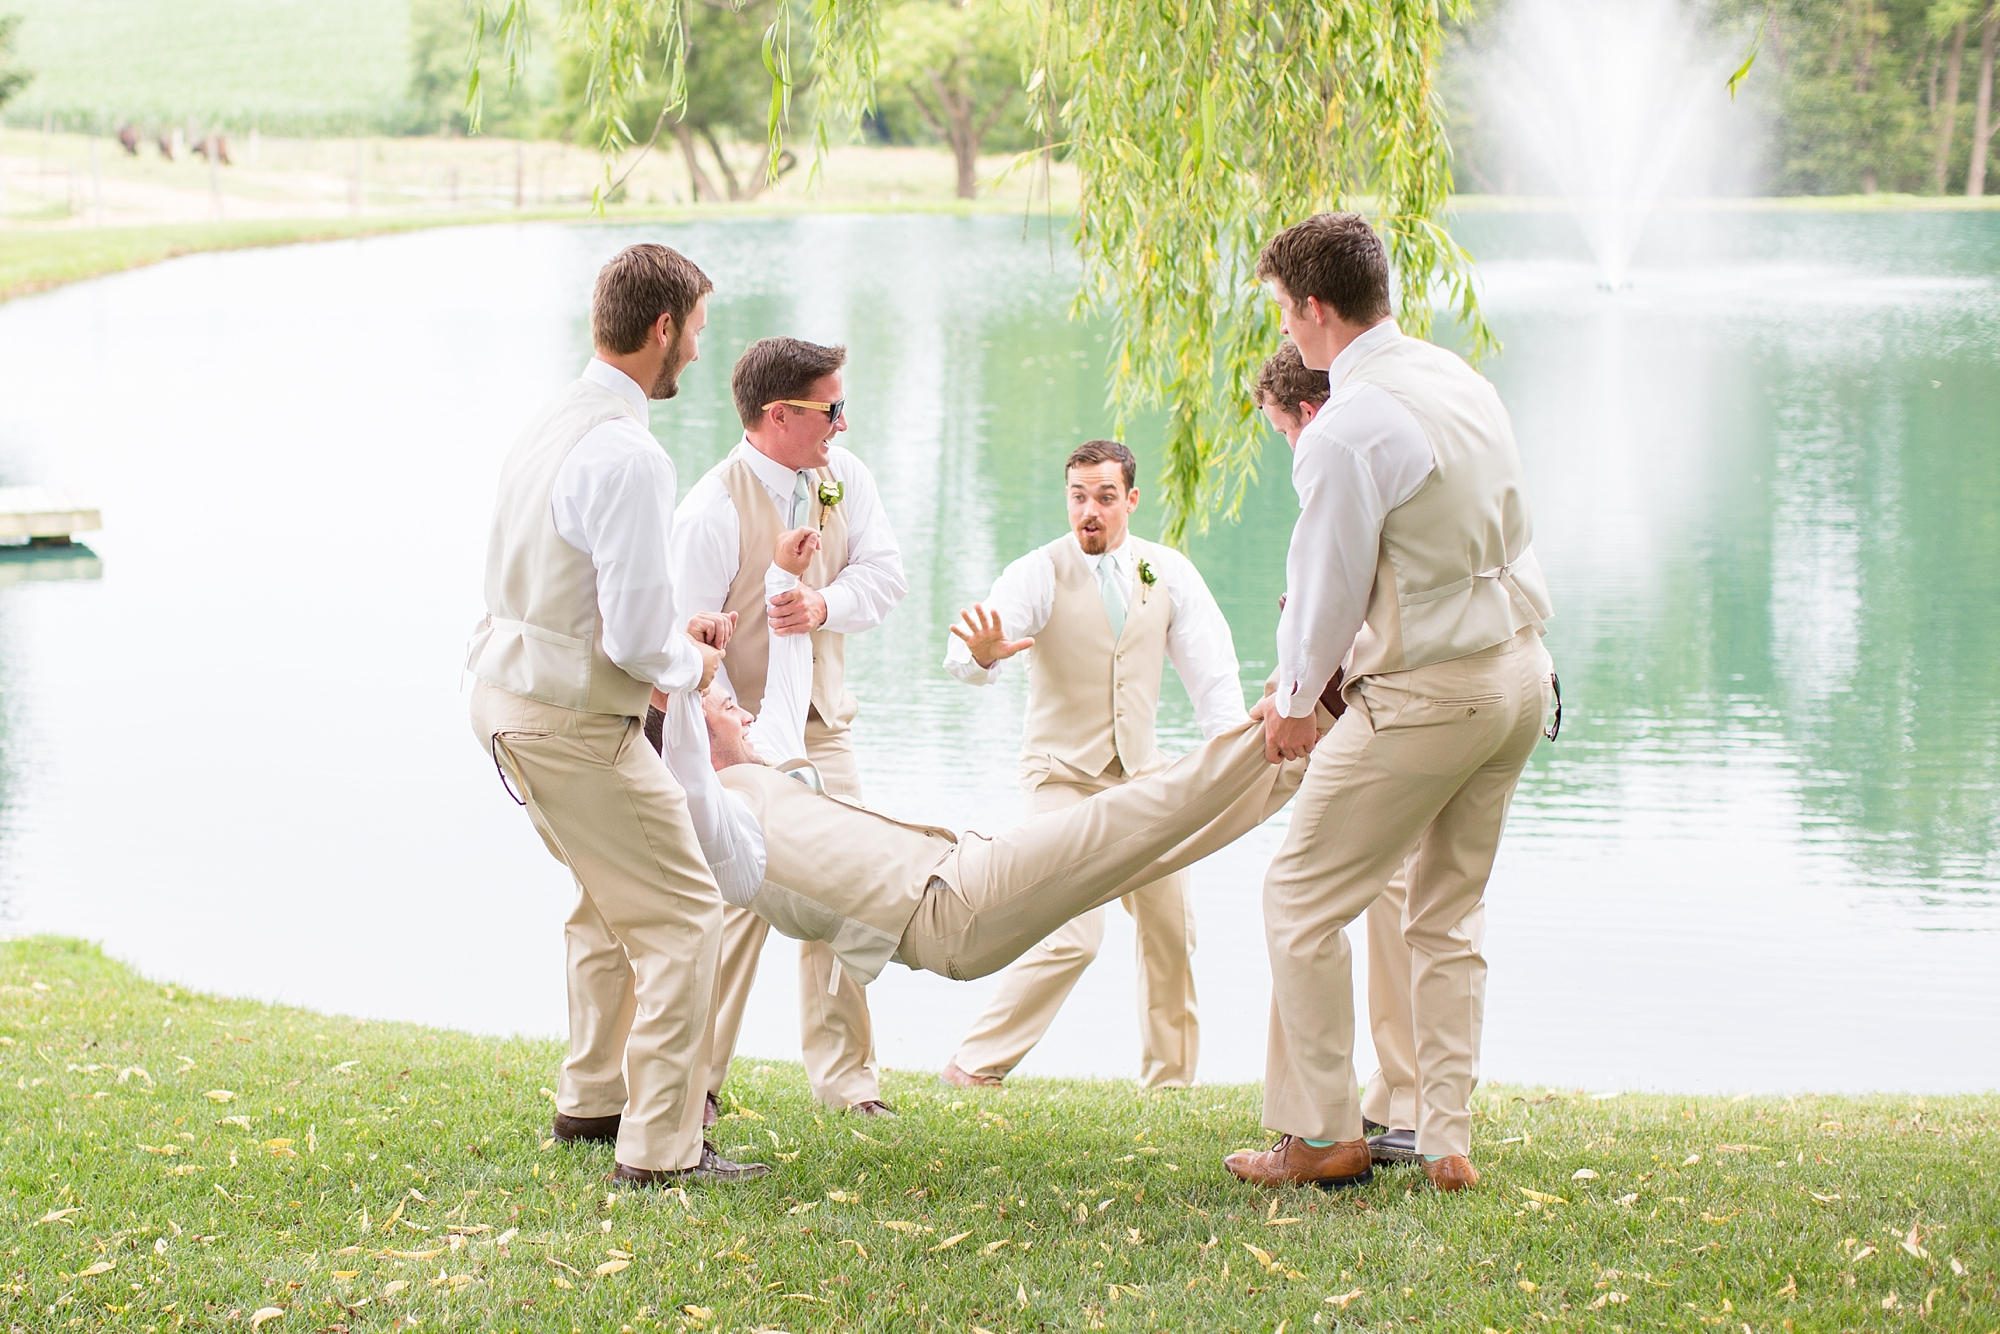 Throwing the groom in the lake! Just kidding!